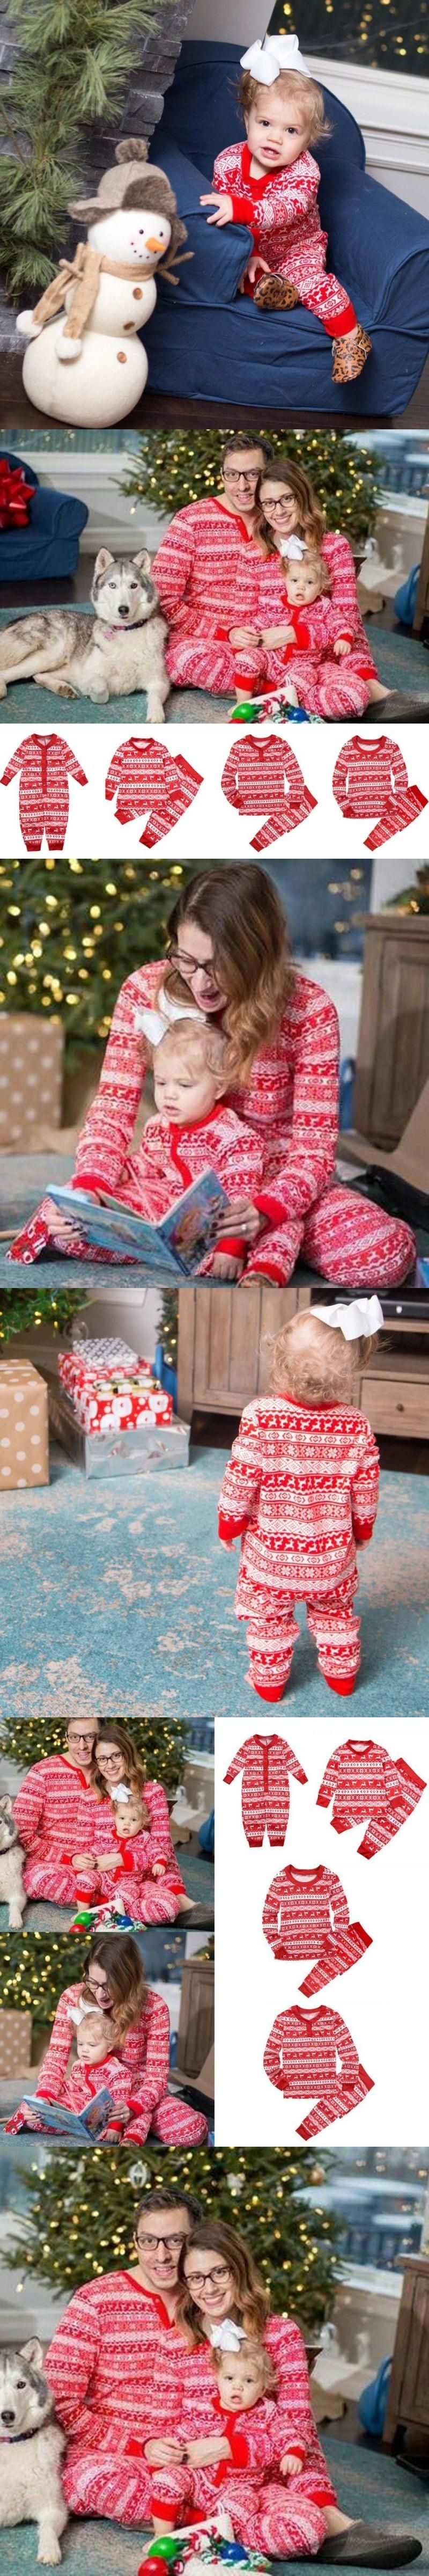 Family Christmas Pajama Family Matching Clothes Xmas Matching Mother  Daughter Fashion Father Son Mon New Year 60860b56e